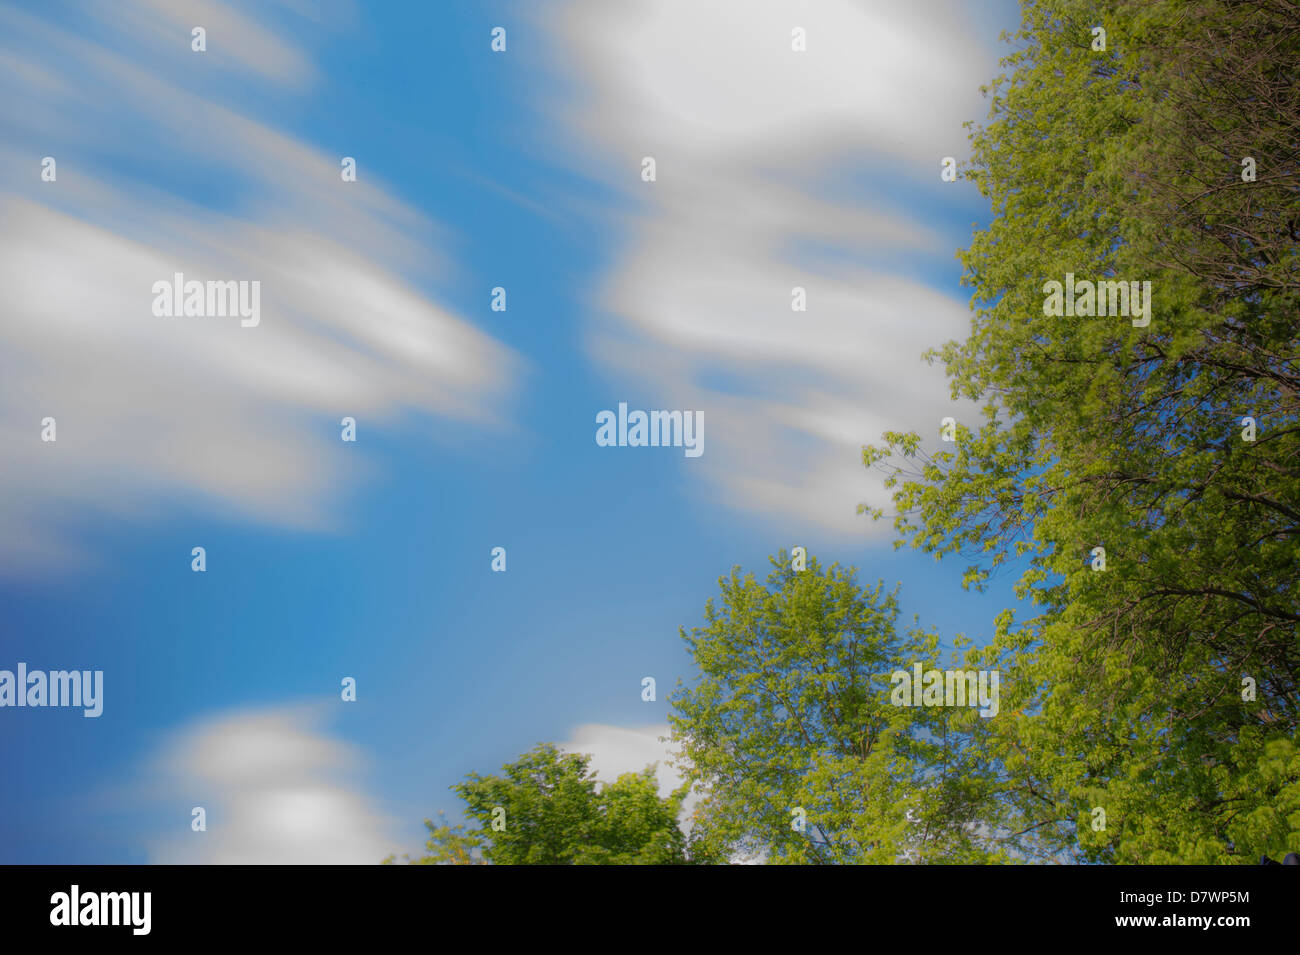 Fast Moving Clouds & Windy Blurry Trees - Stock Image